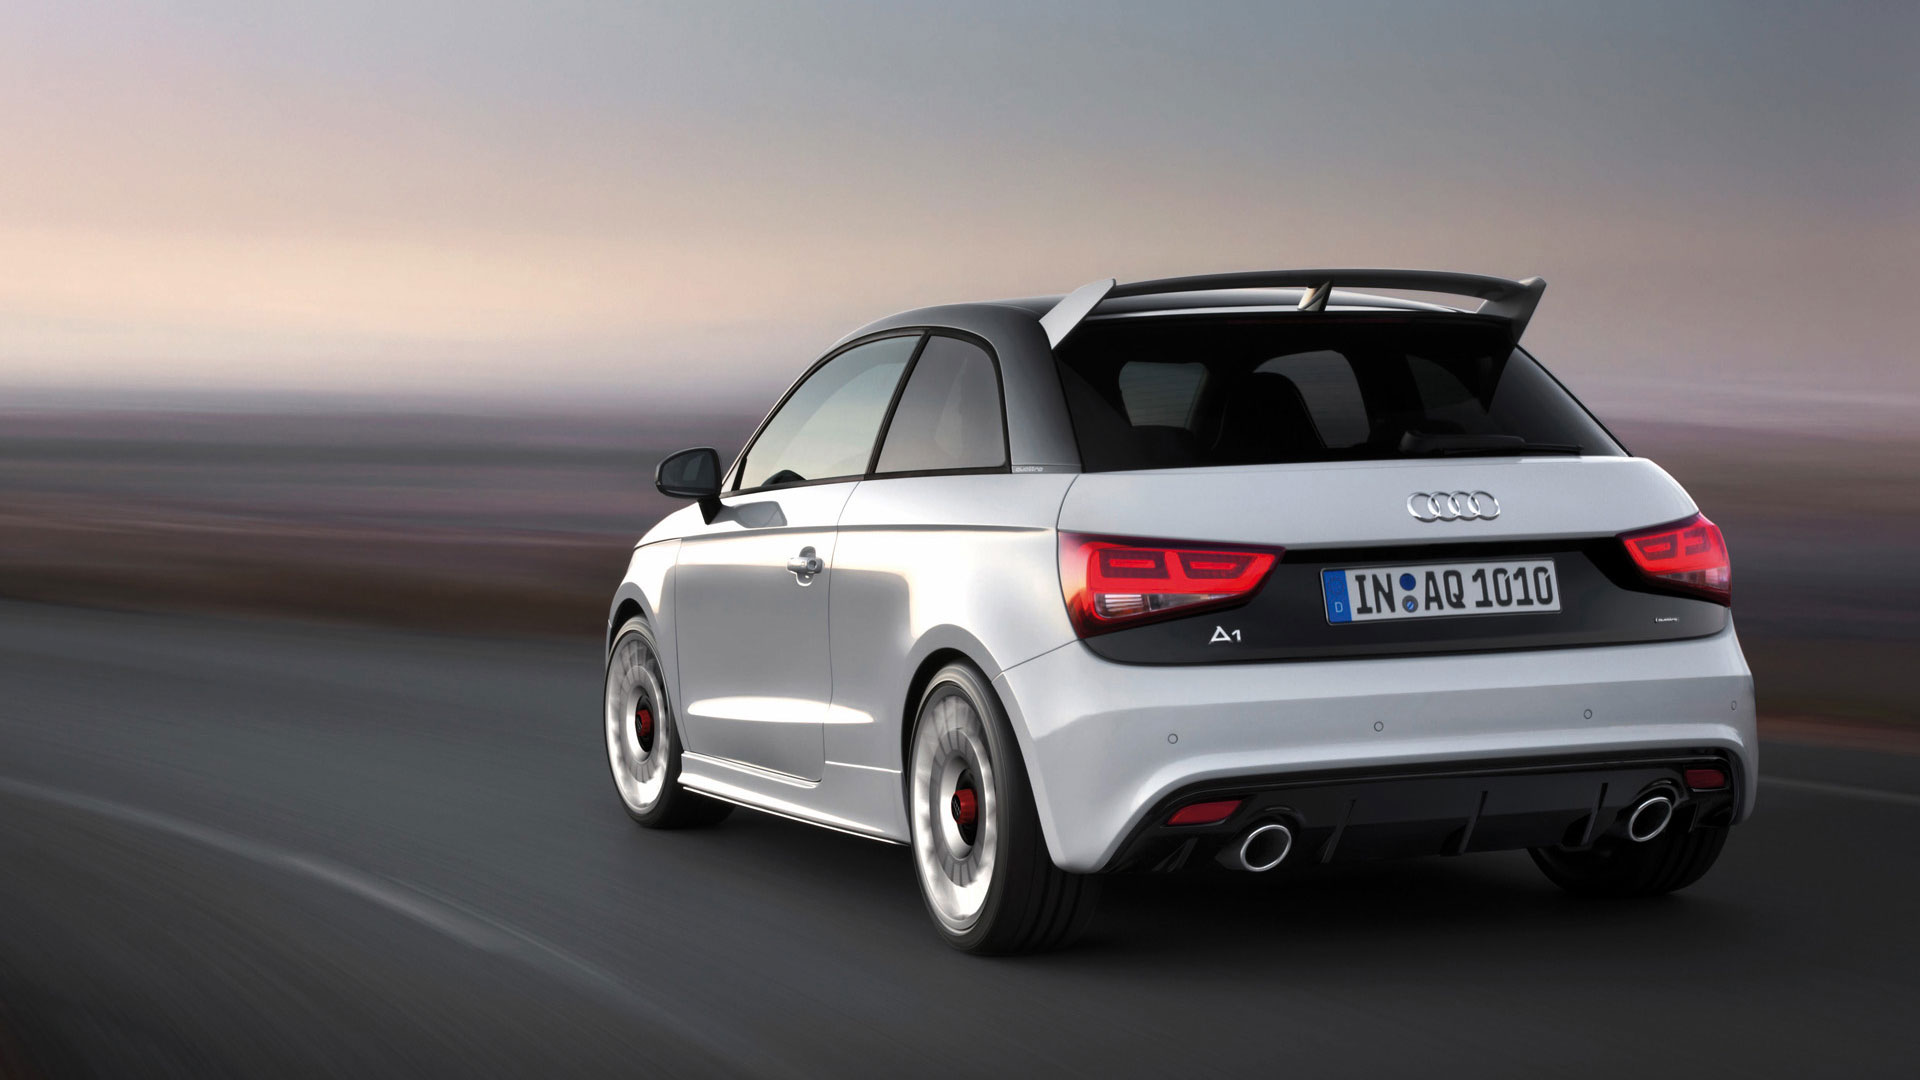 1920x1080 - Audi A1 Wallpapers 1